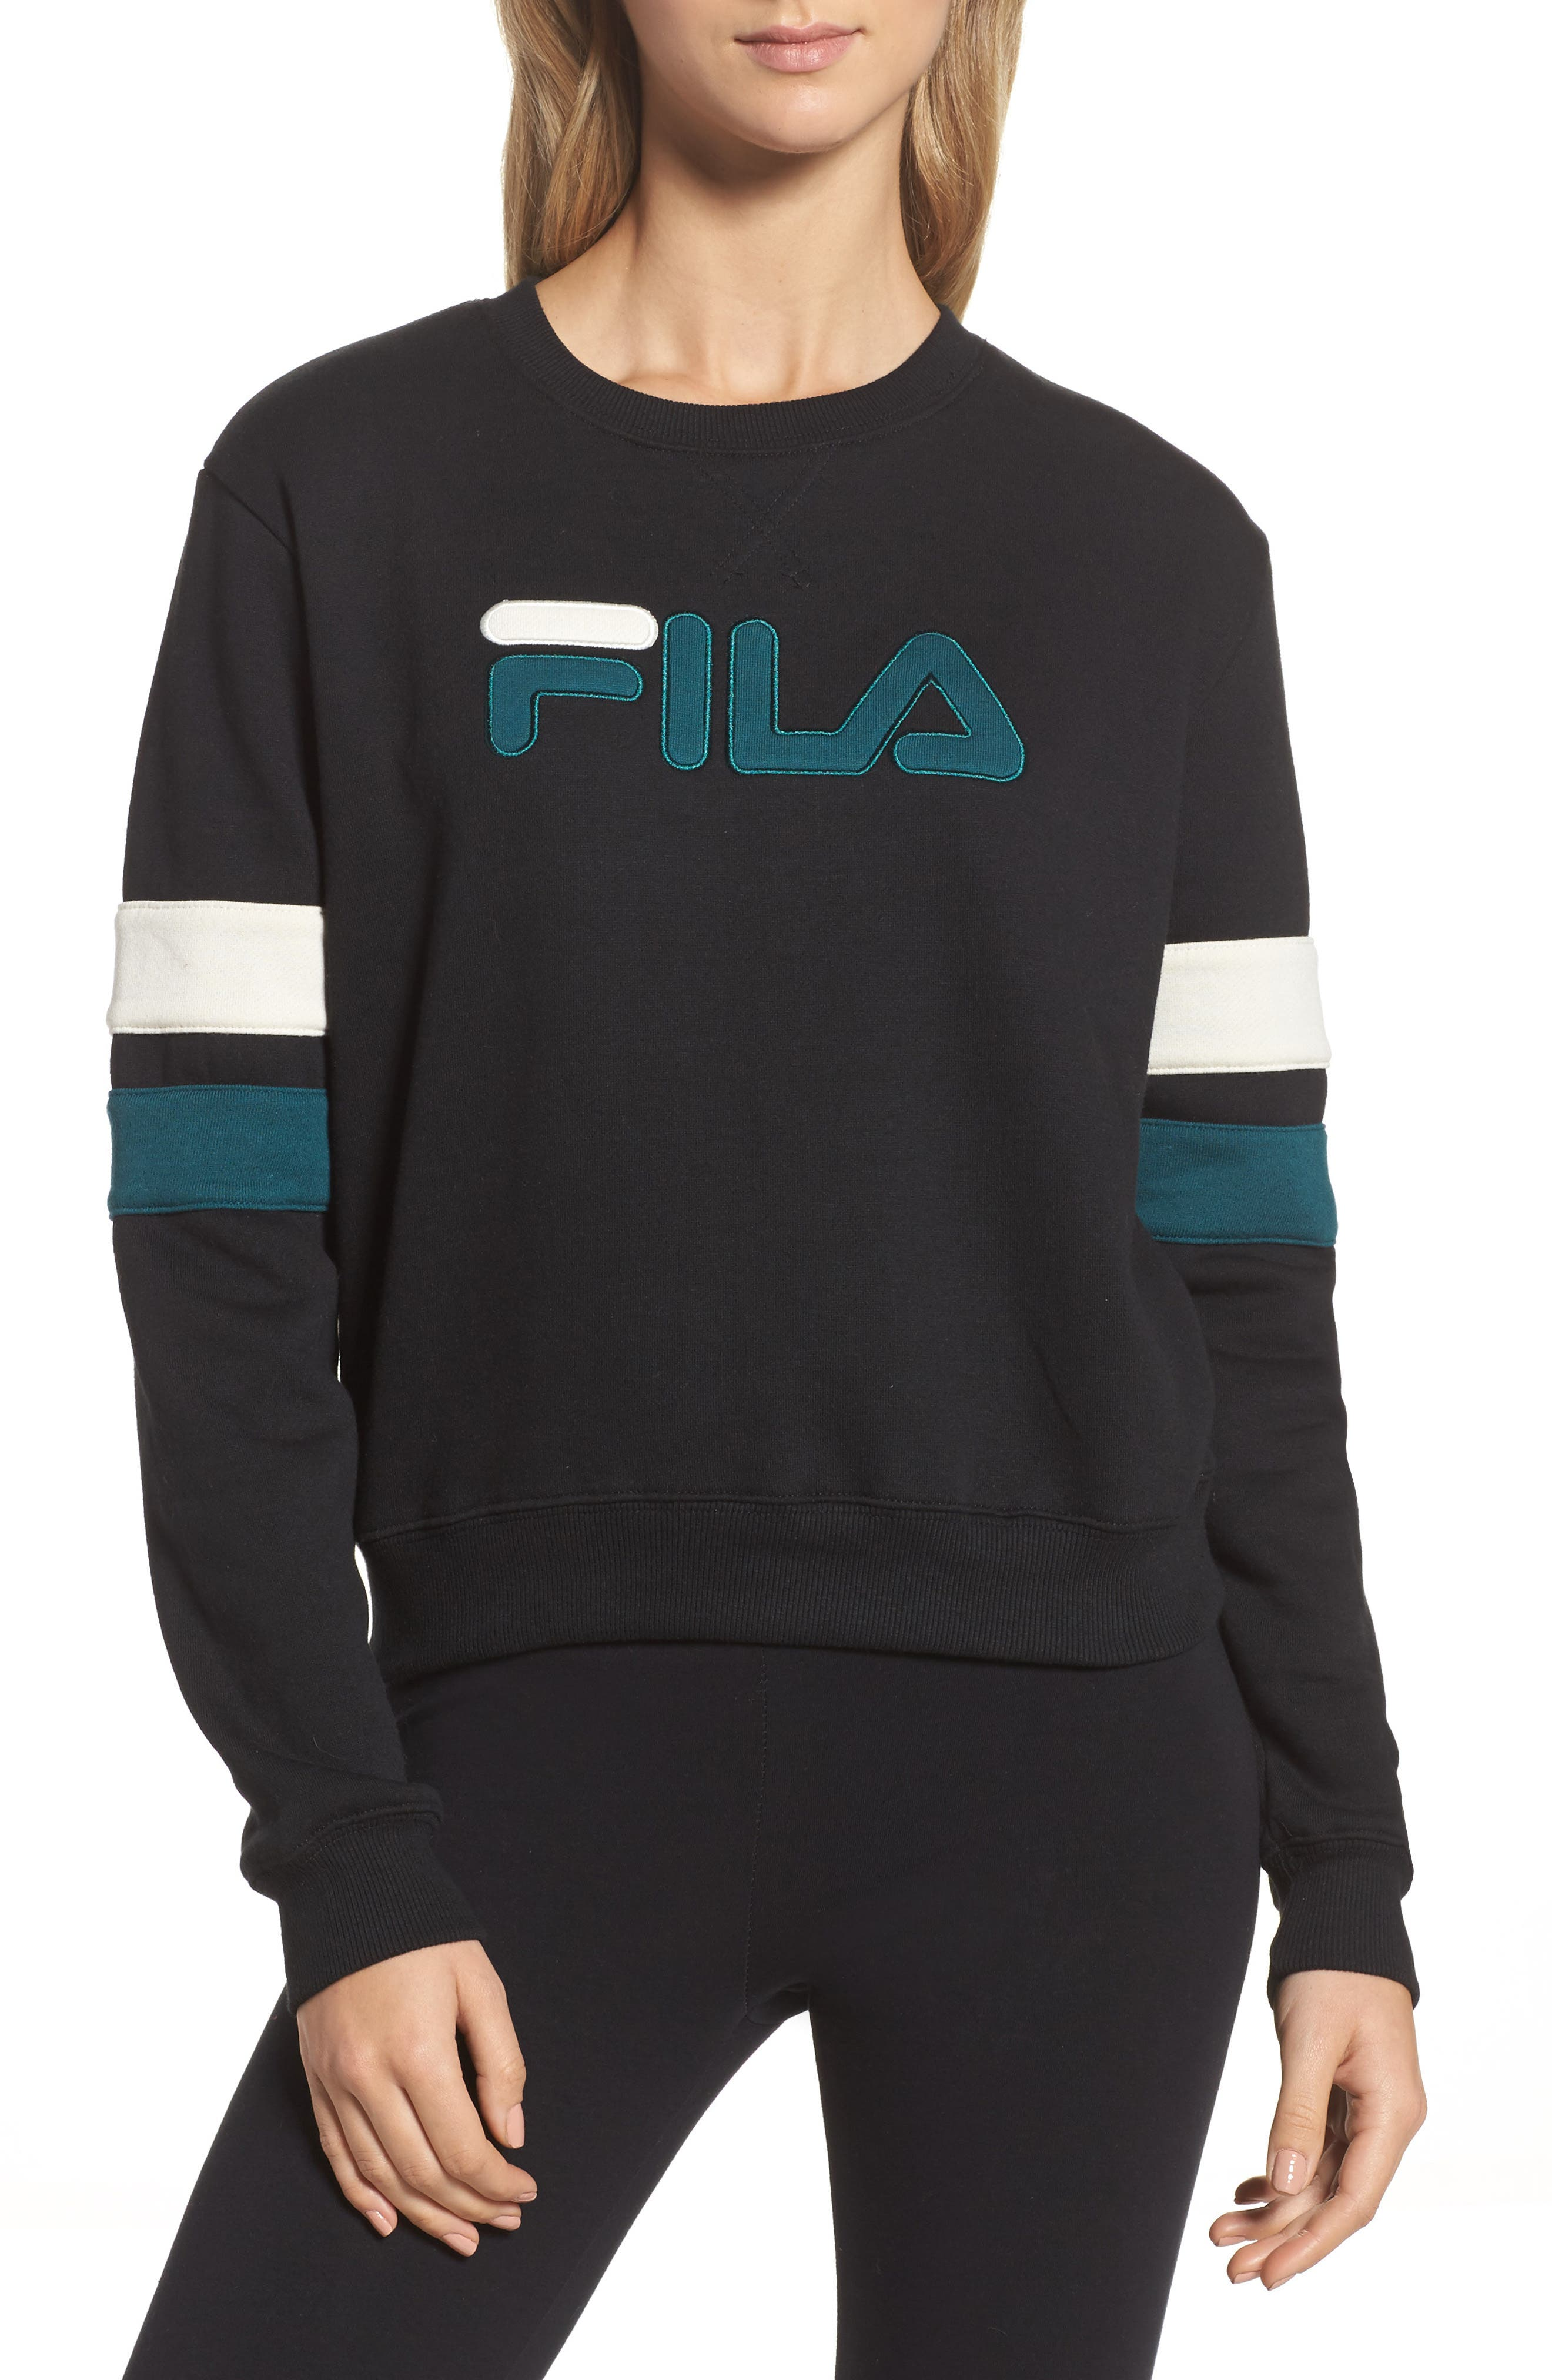 Newton Sweatshirt,                             Main thumbnail 1, color,                             Black/ Deep Teal/ Gardenia